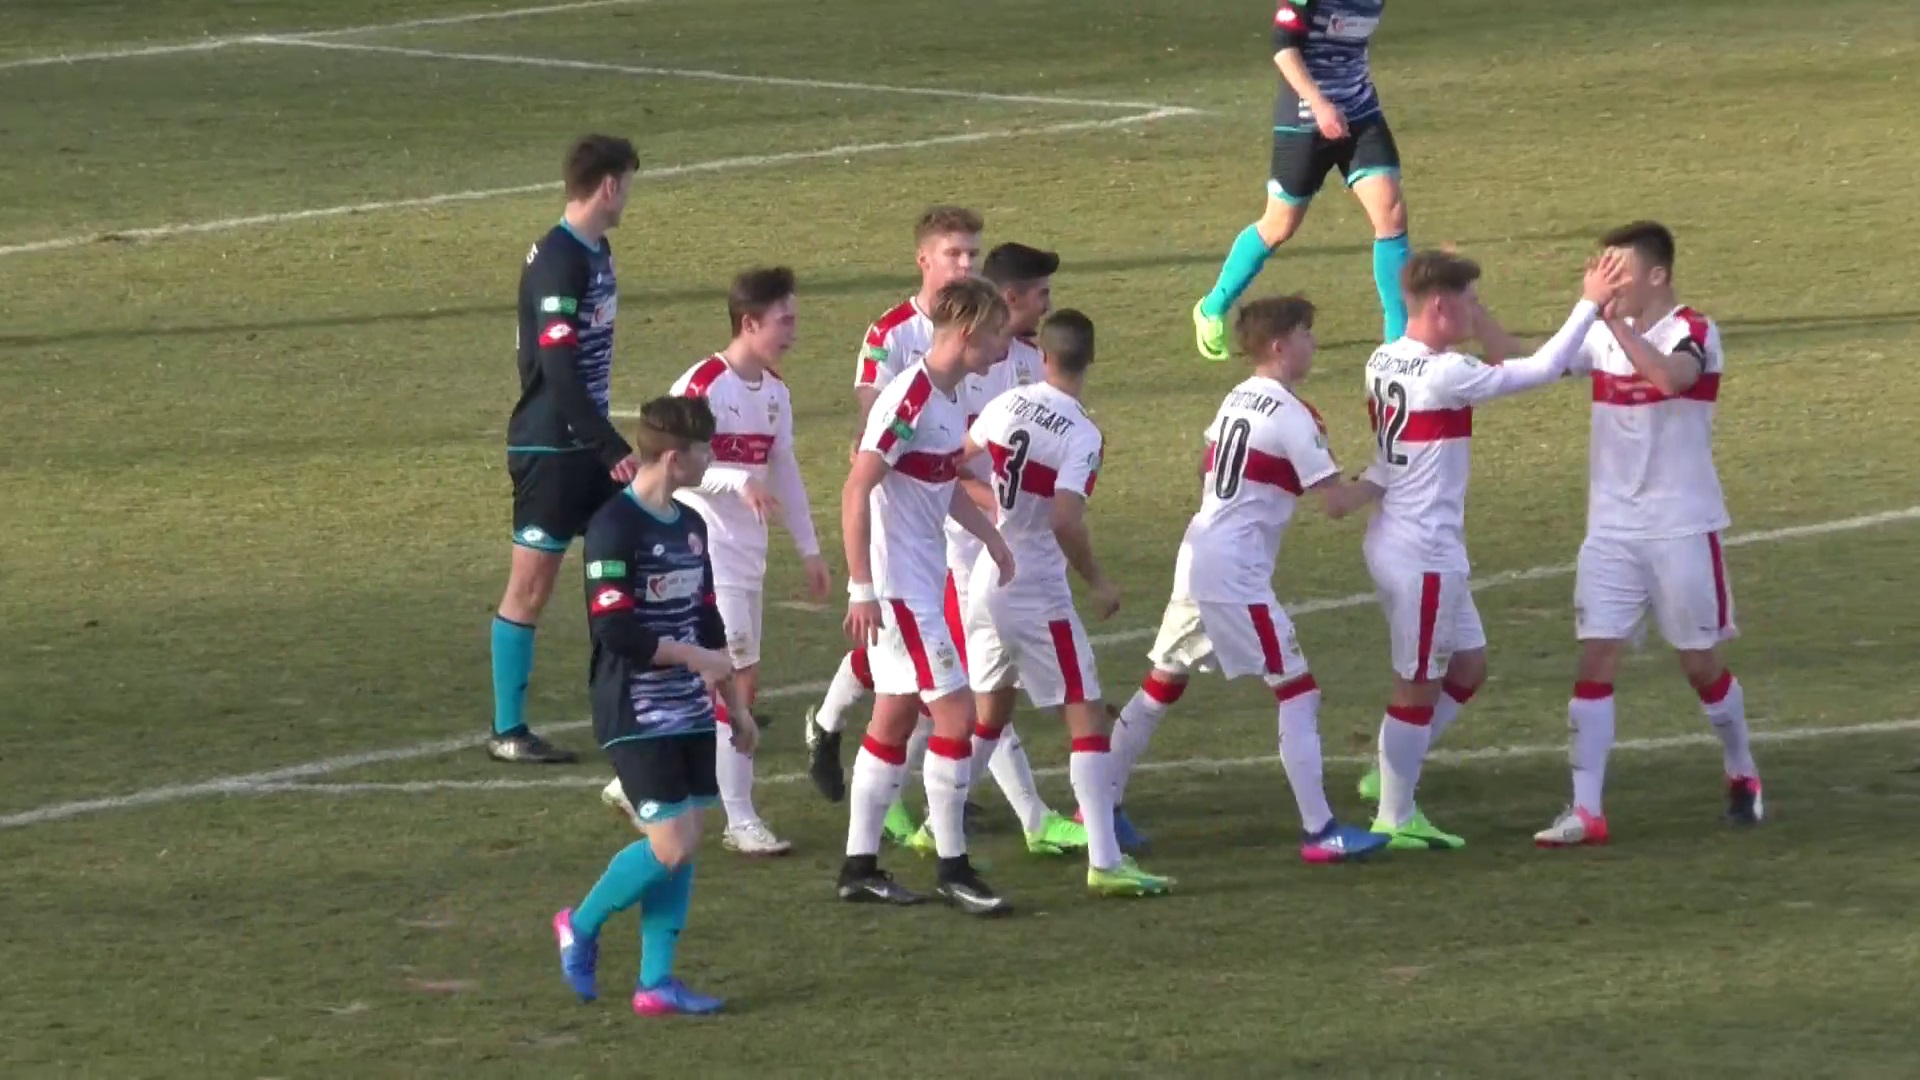 Highlights: VfB U17 - 1. FSV Mainz 05